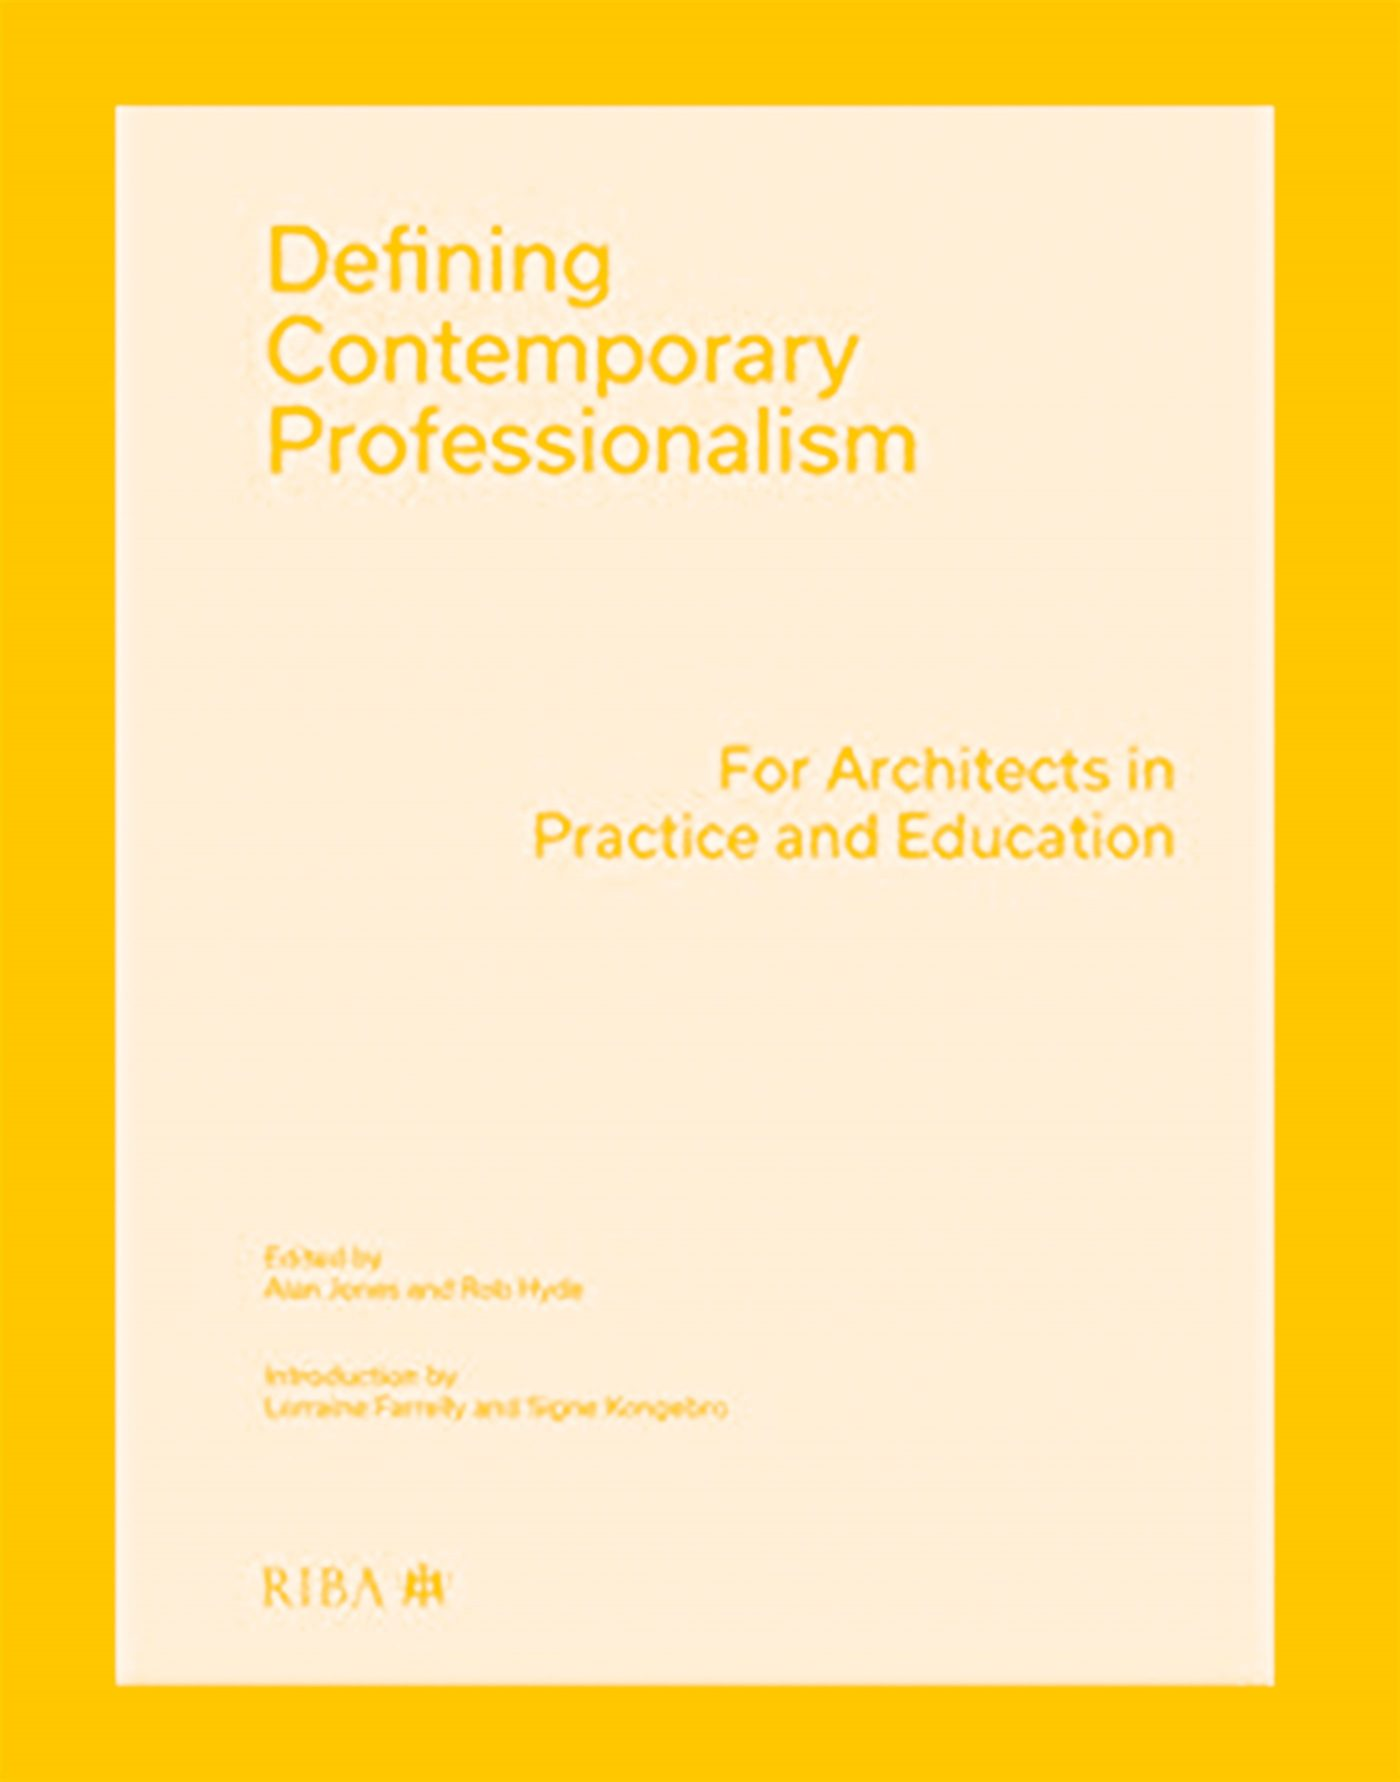 190902 Riba Defining Contemporary Professionalism